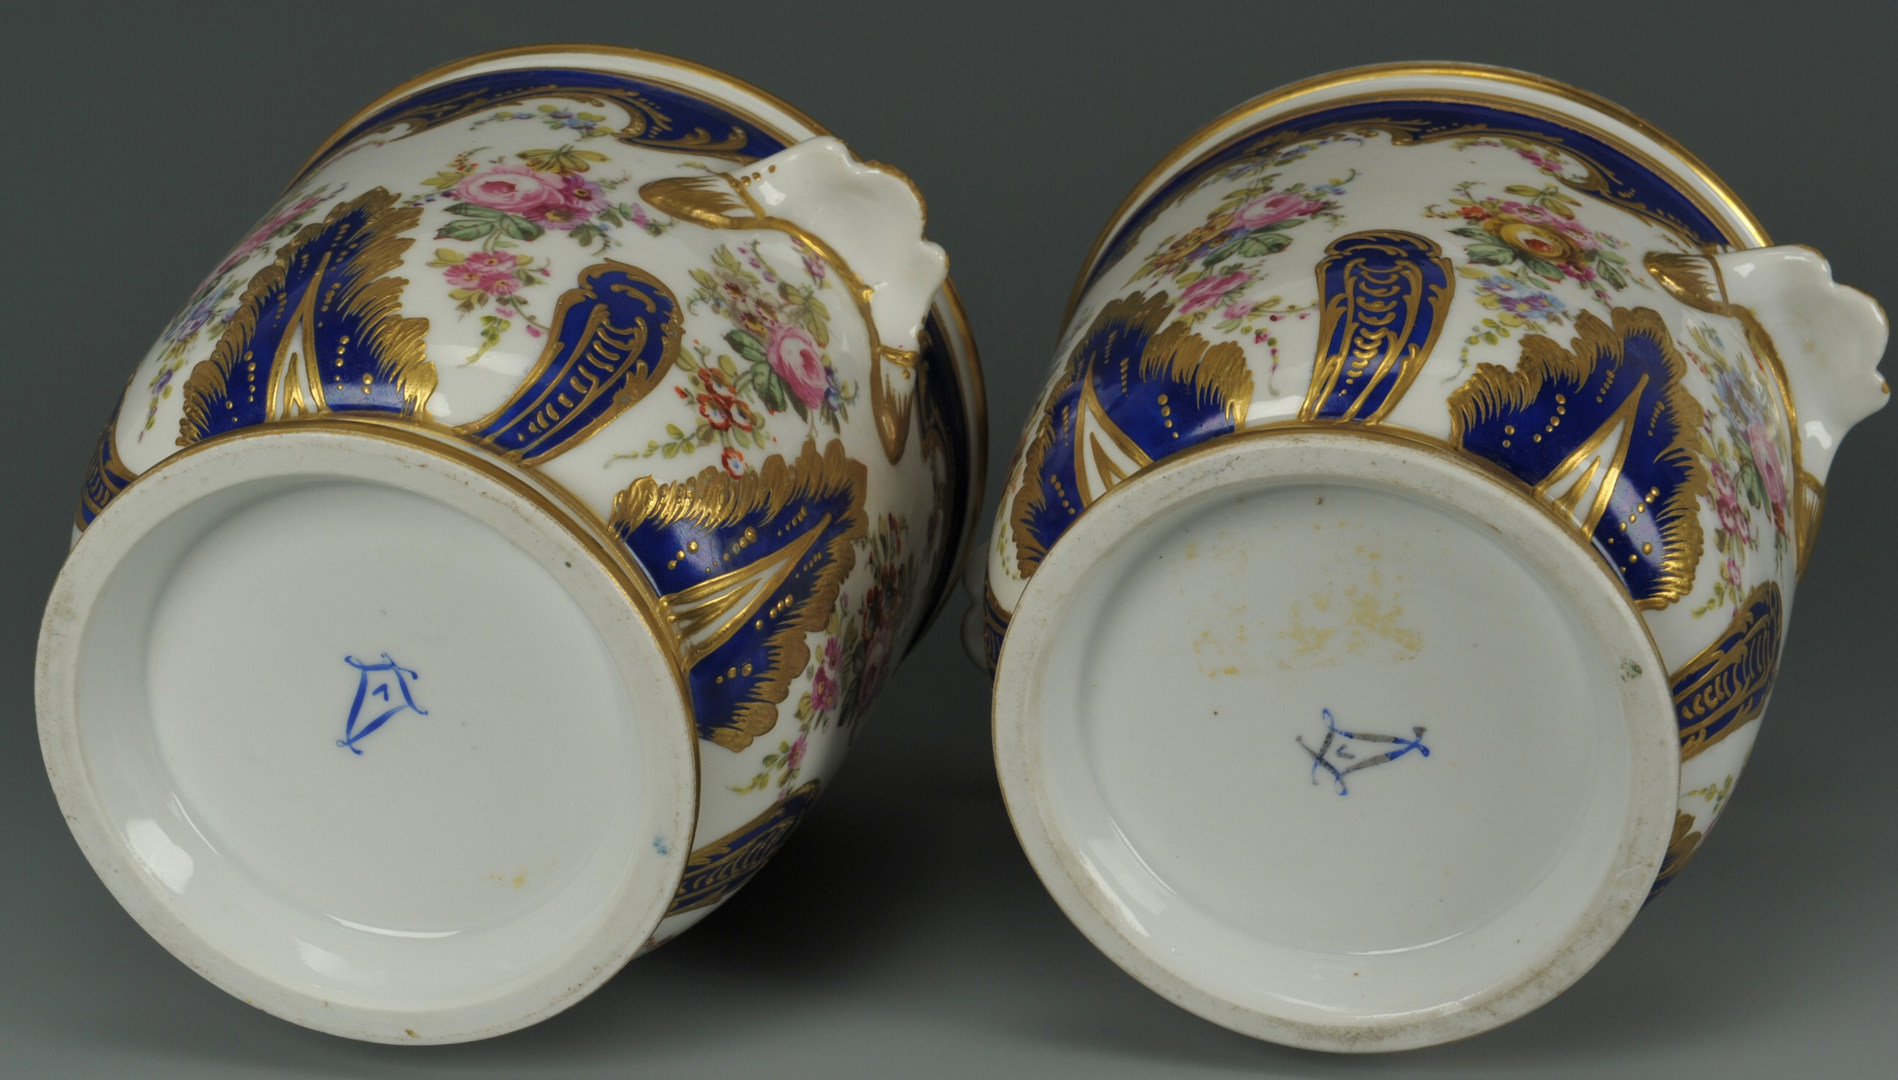 Lot 248: Pair of Sevres style porcelain jardinieres